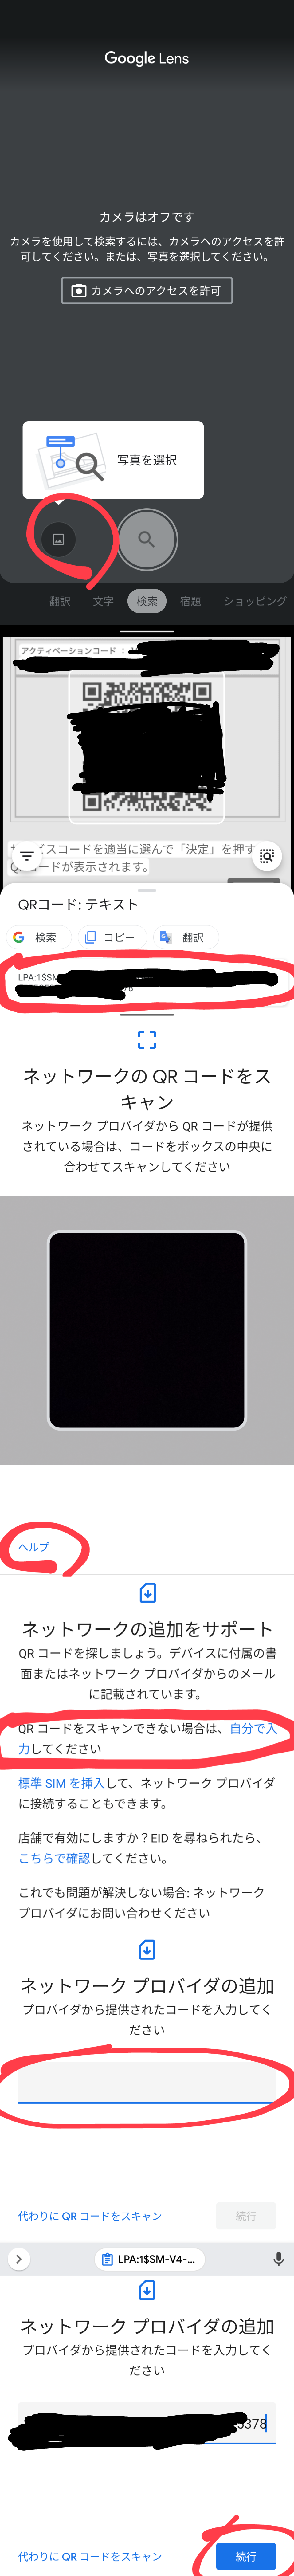 JointPics_20210416_072136~4.PNG